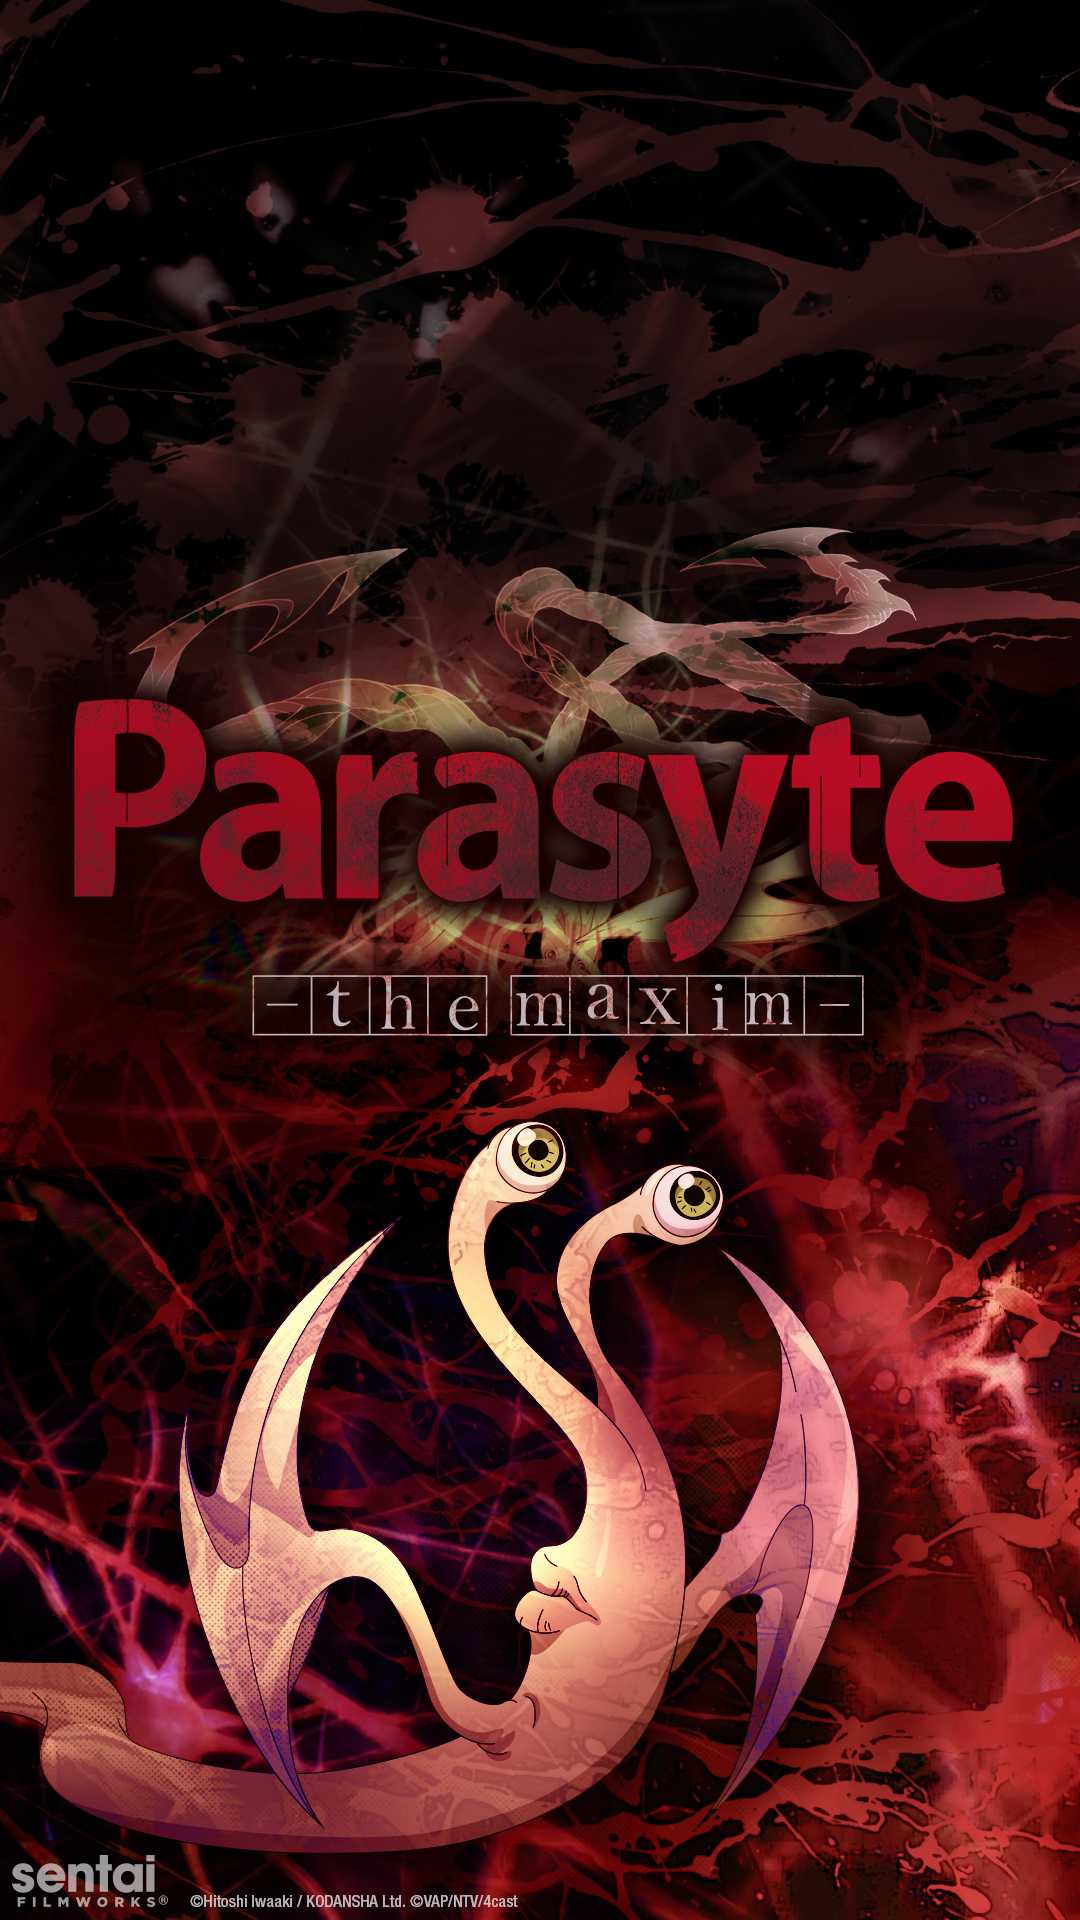 [Parasyte the maxim] Official Migi mobile wallpaper from